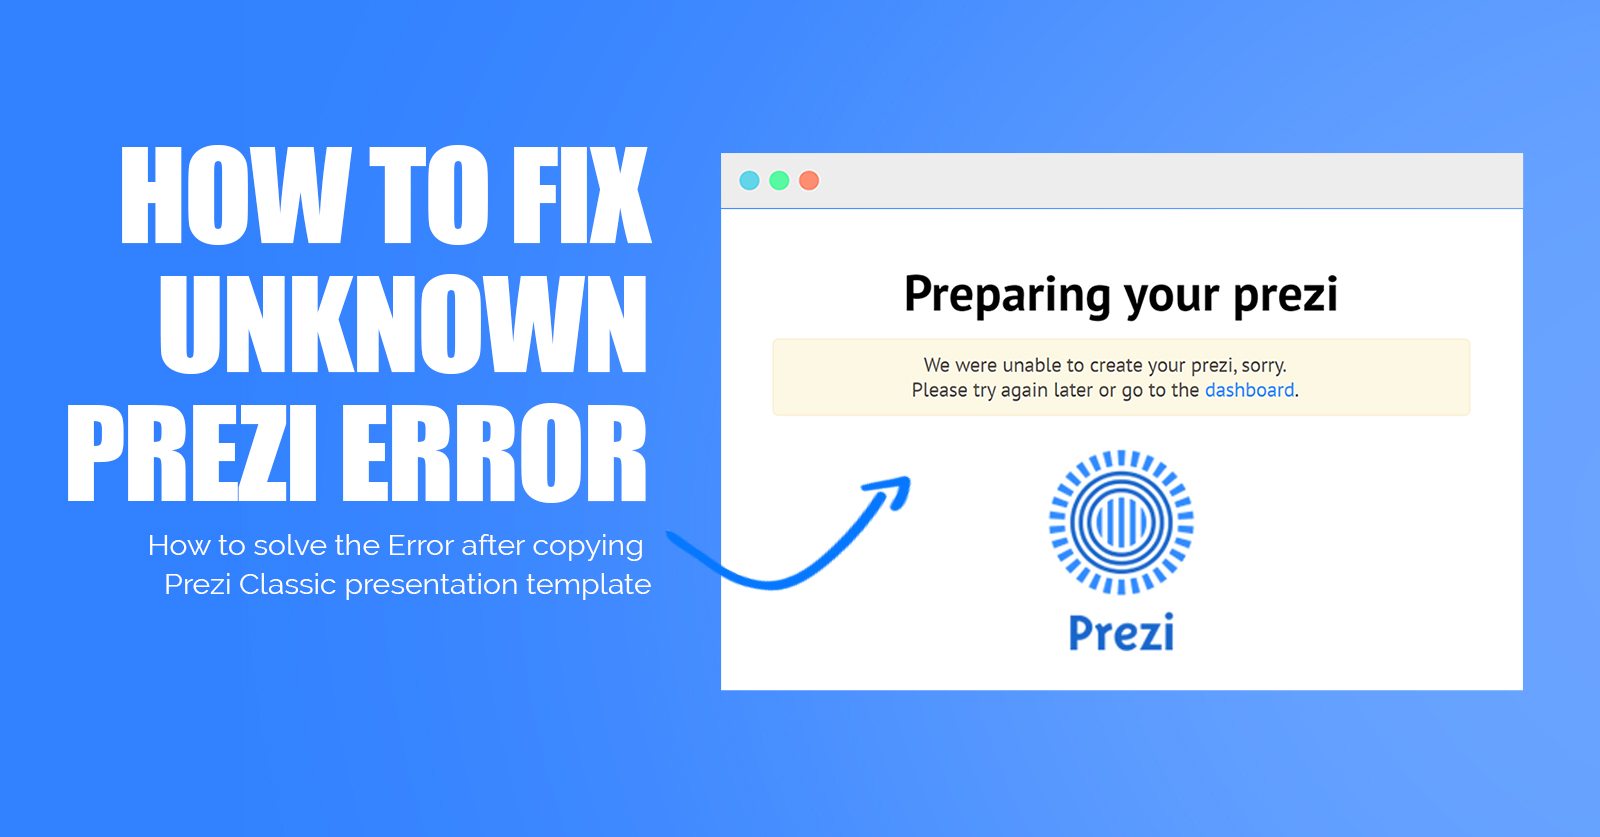 please-try-again-later-unable-to-create-your-prezi